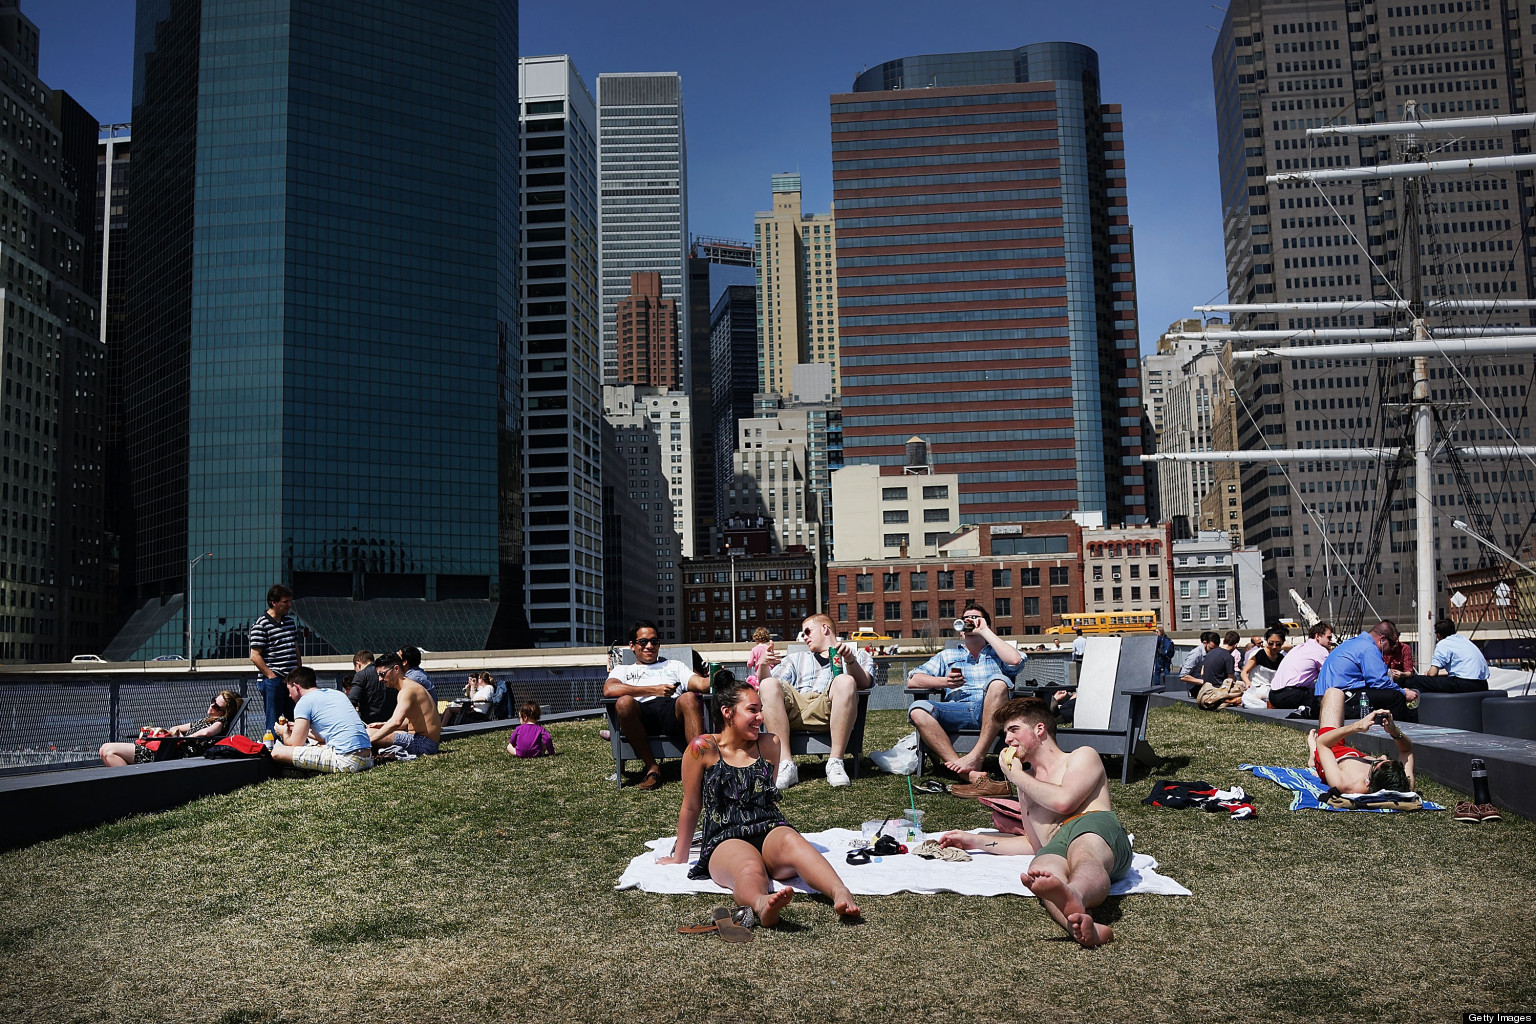 york weather. New York City Weather The Warmest In Months, Yorkers Bask Sun (PHOTOS) | HuffPost T